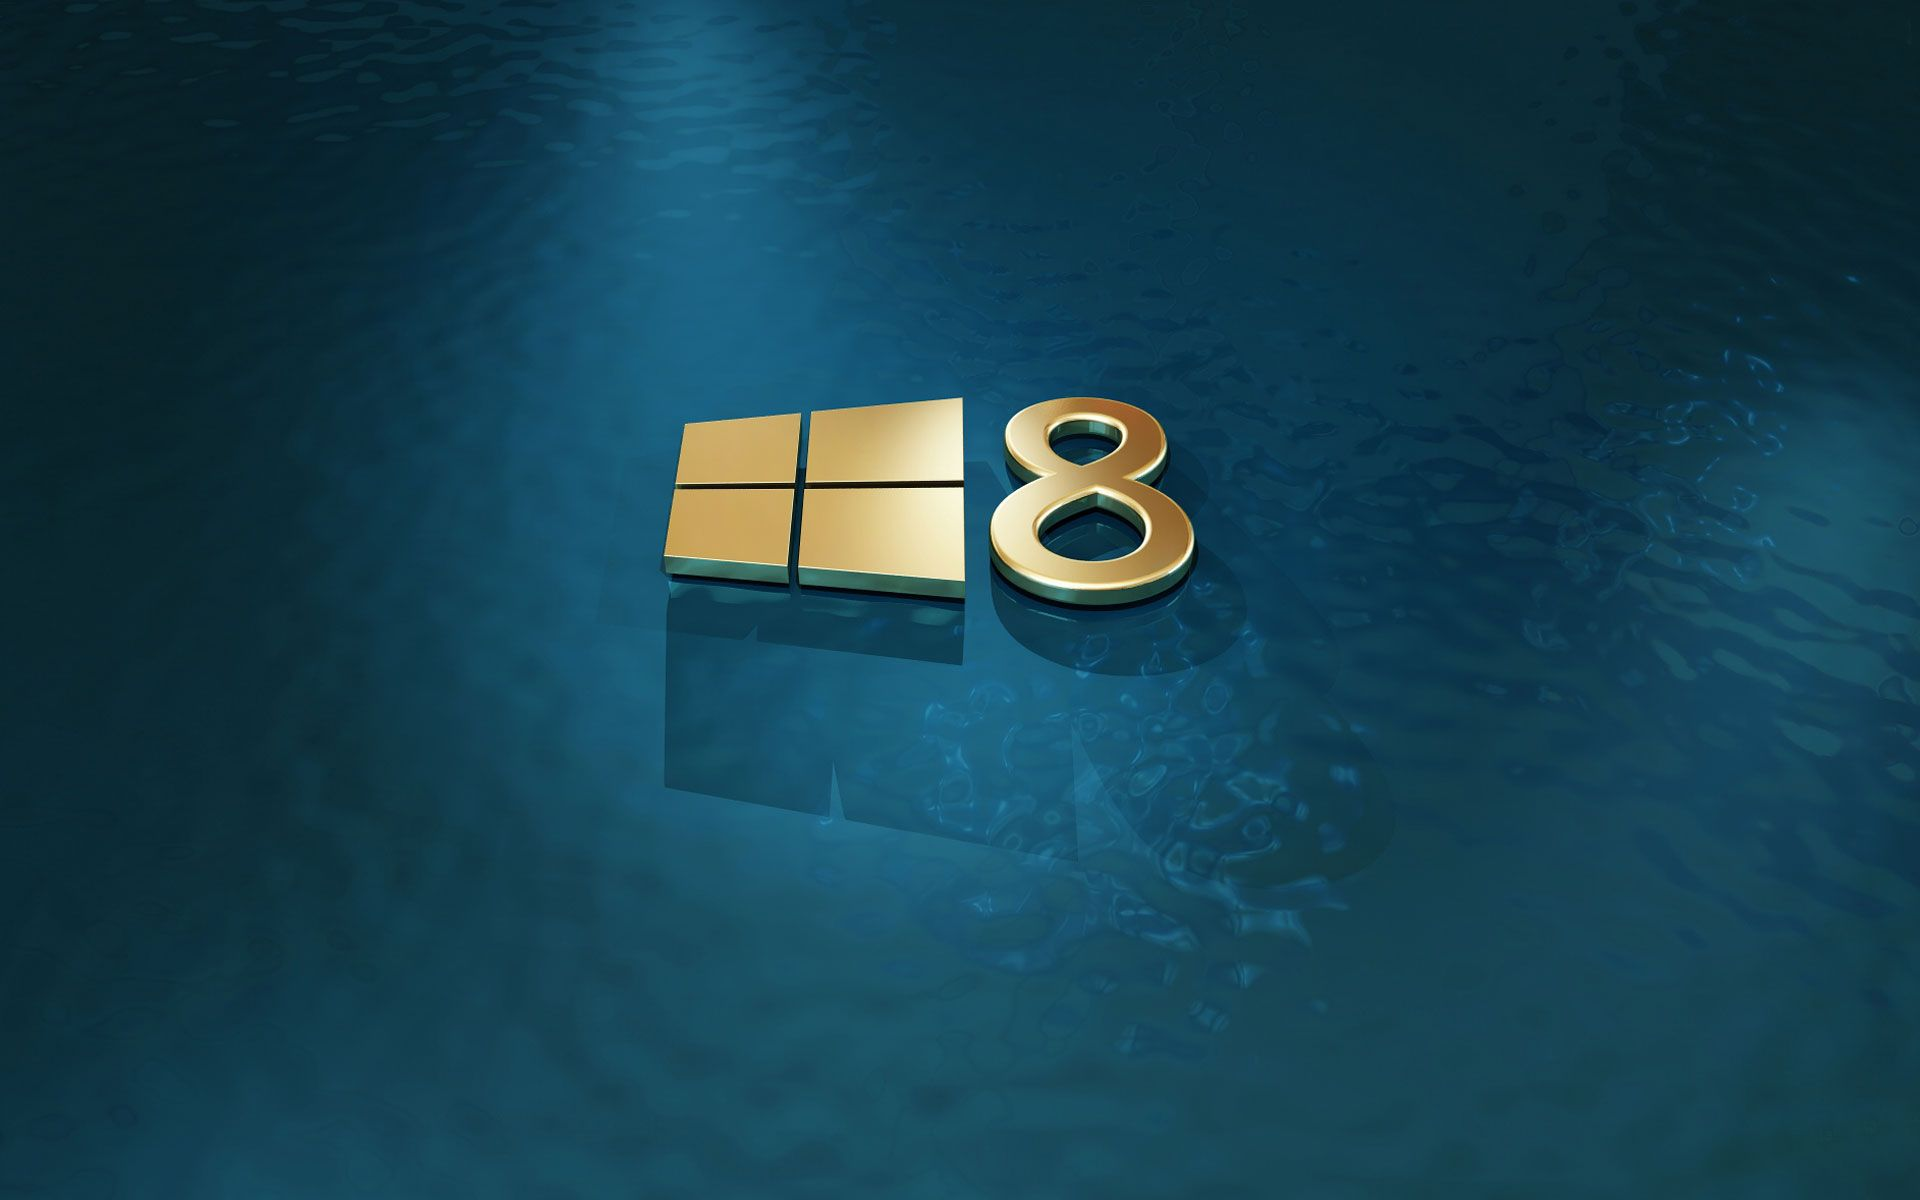 download these hd windows wallpaper images 1920a—1200 windows 8 wallpaper 38 wallpapers